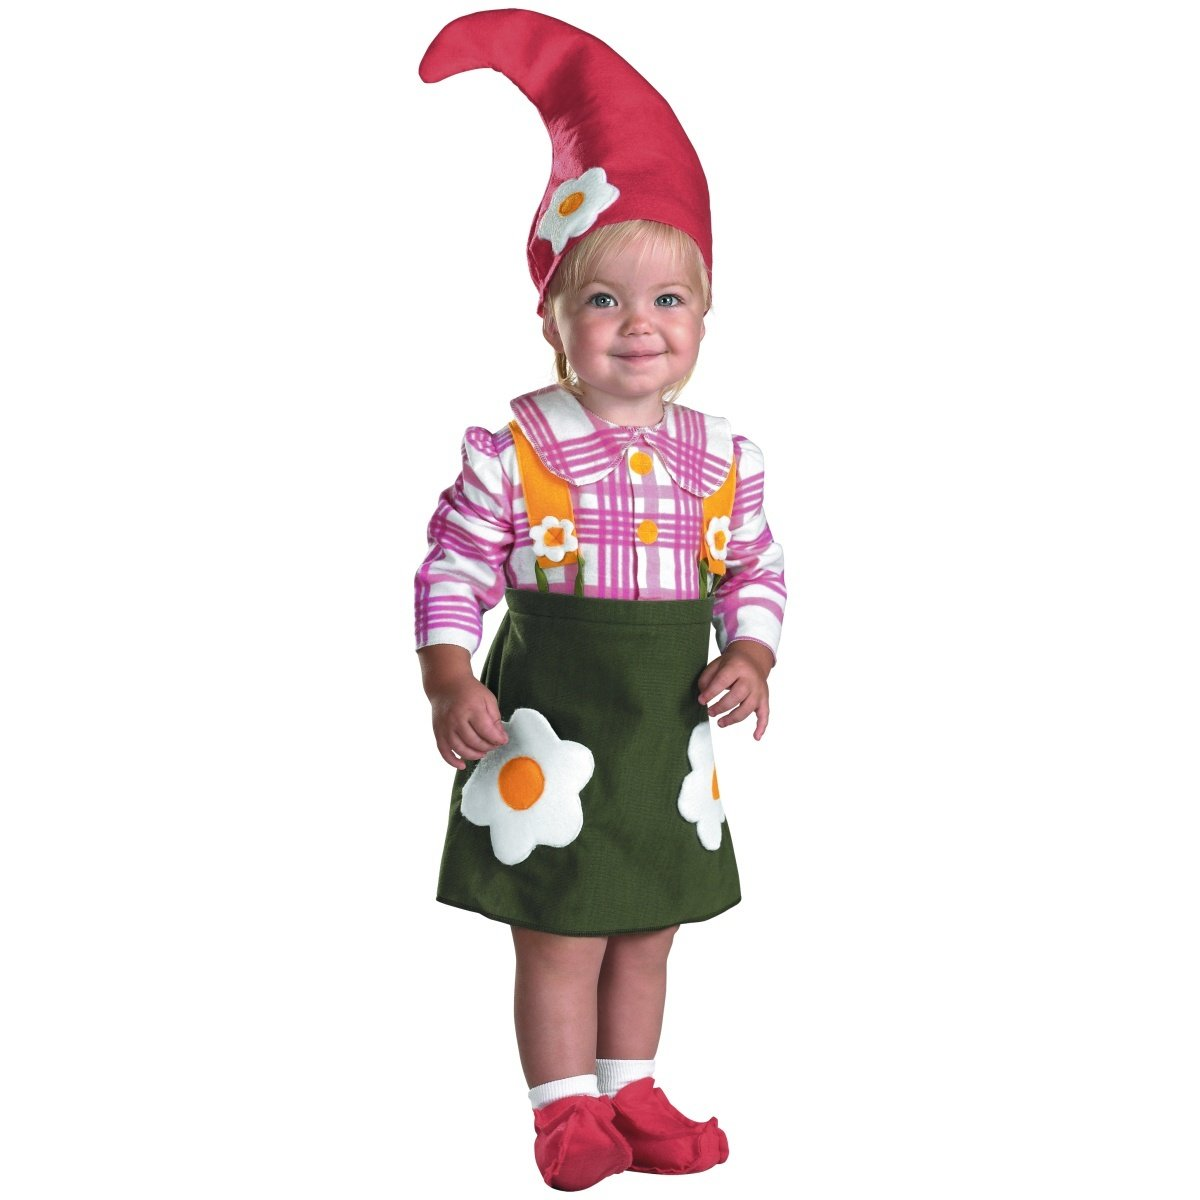 Amazon.com: Flower Garden Gnome Costume - Toddler Small: Clothing